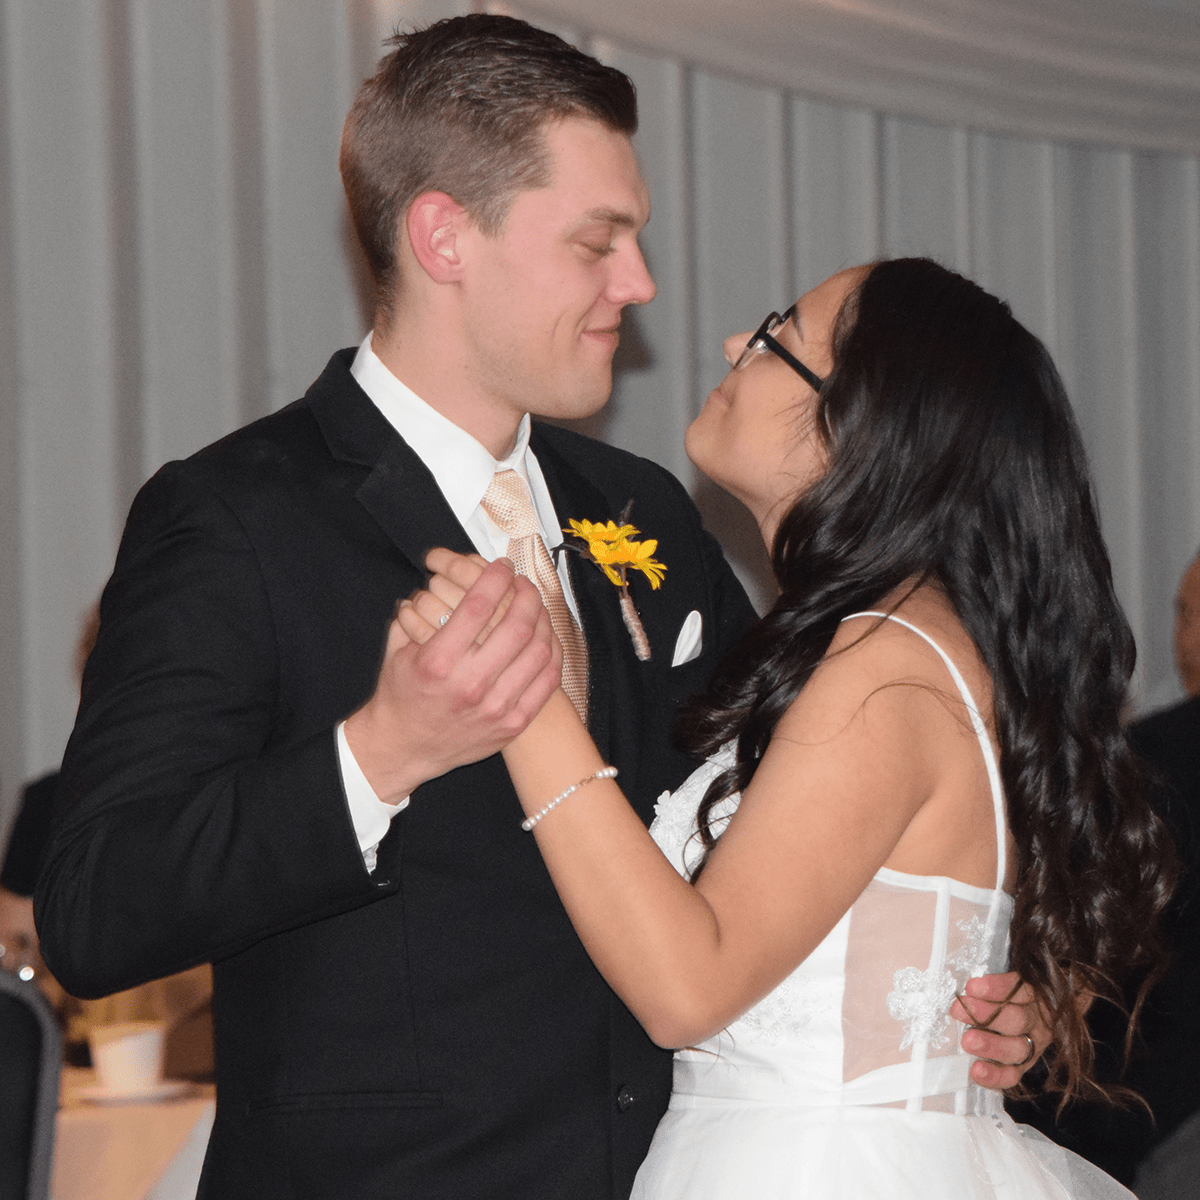 Wedding: Ke'haulani and Zachary at Hart's Hill Inn, Whitesboro, 10/12/19